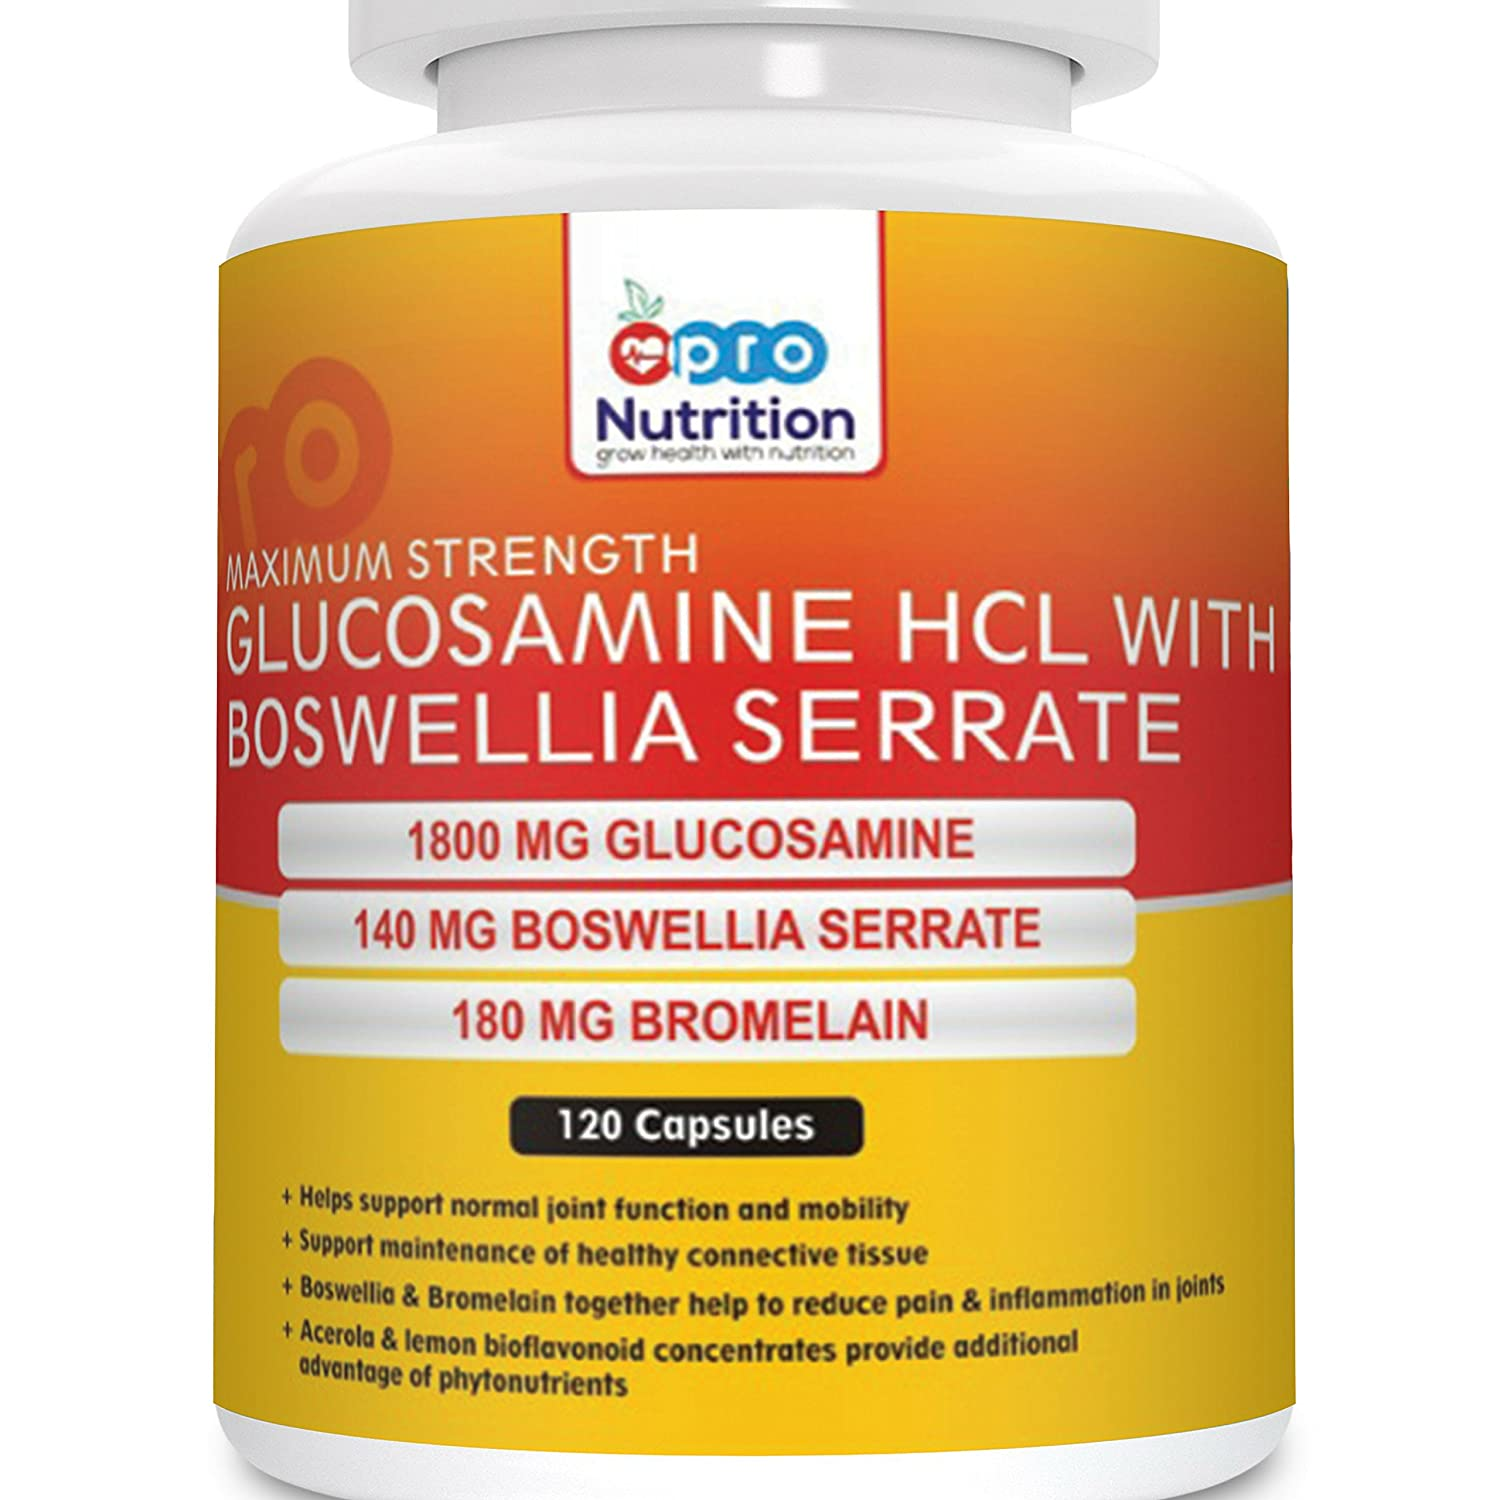 Pronutrition Glucosamine Hcl With Boswellia (Double